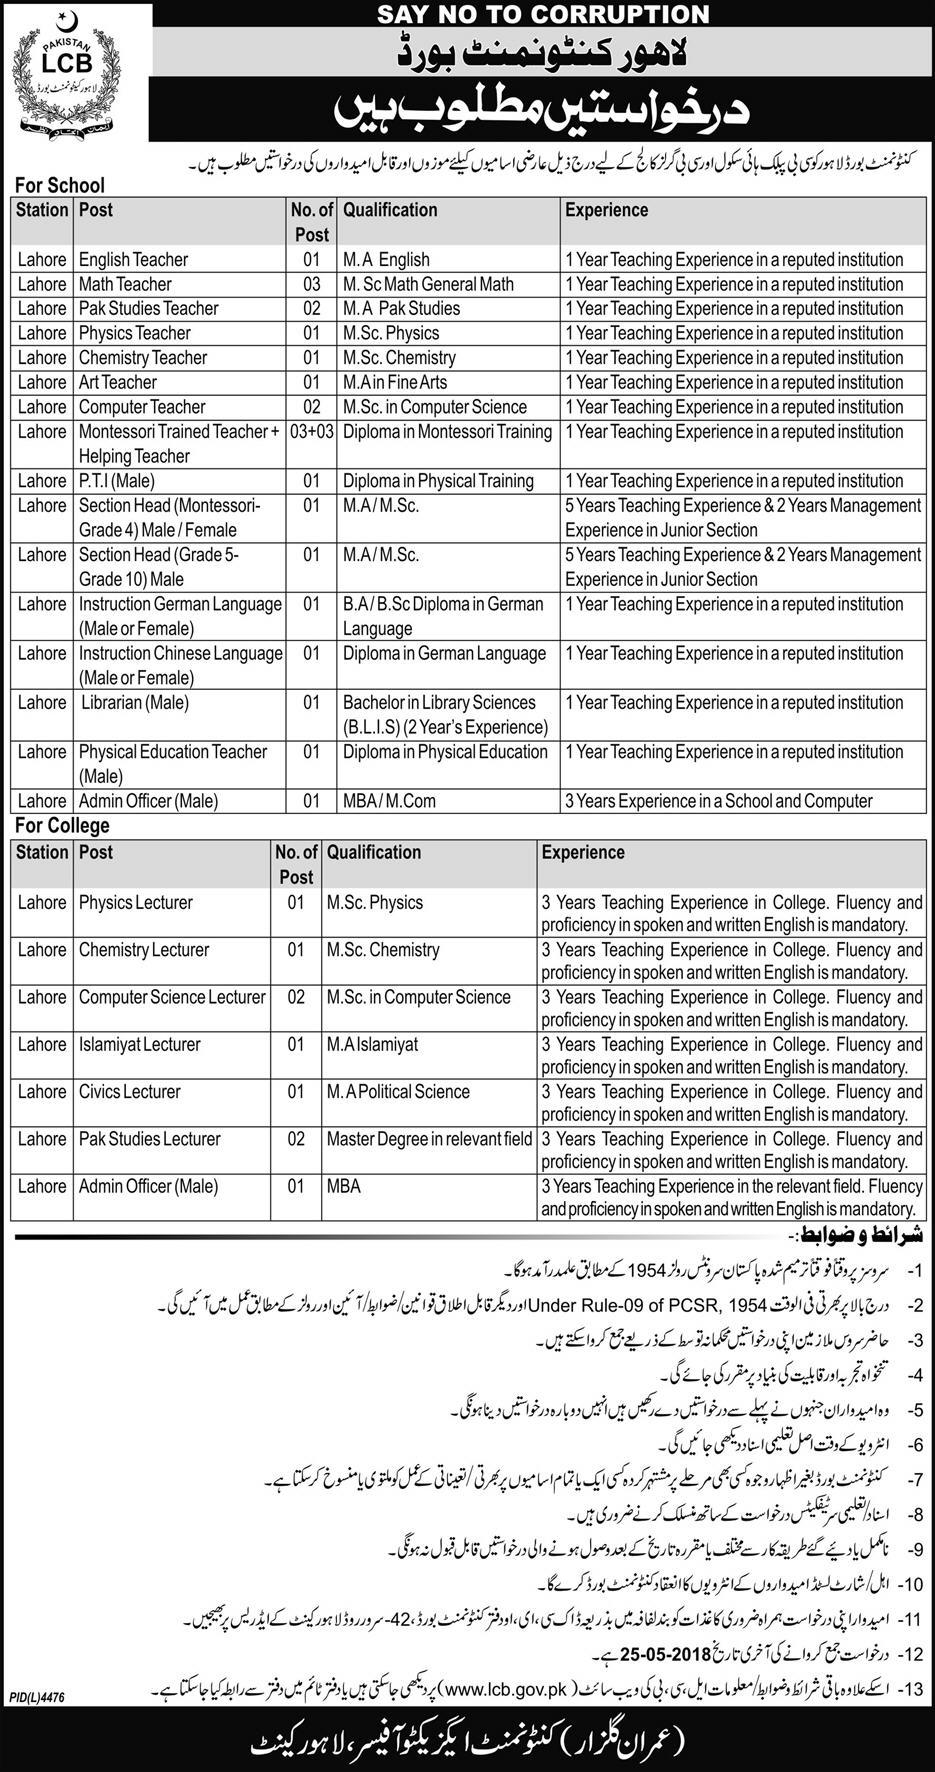 Express Newspaper Cantonment Board Lahore Jobs 10 May 2018